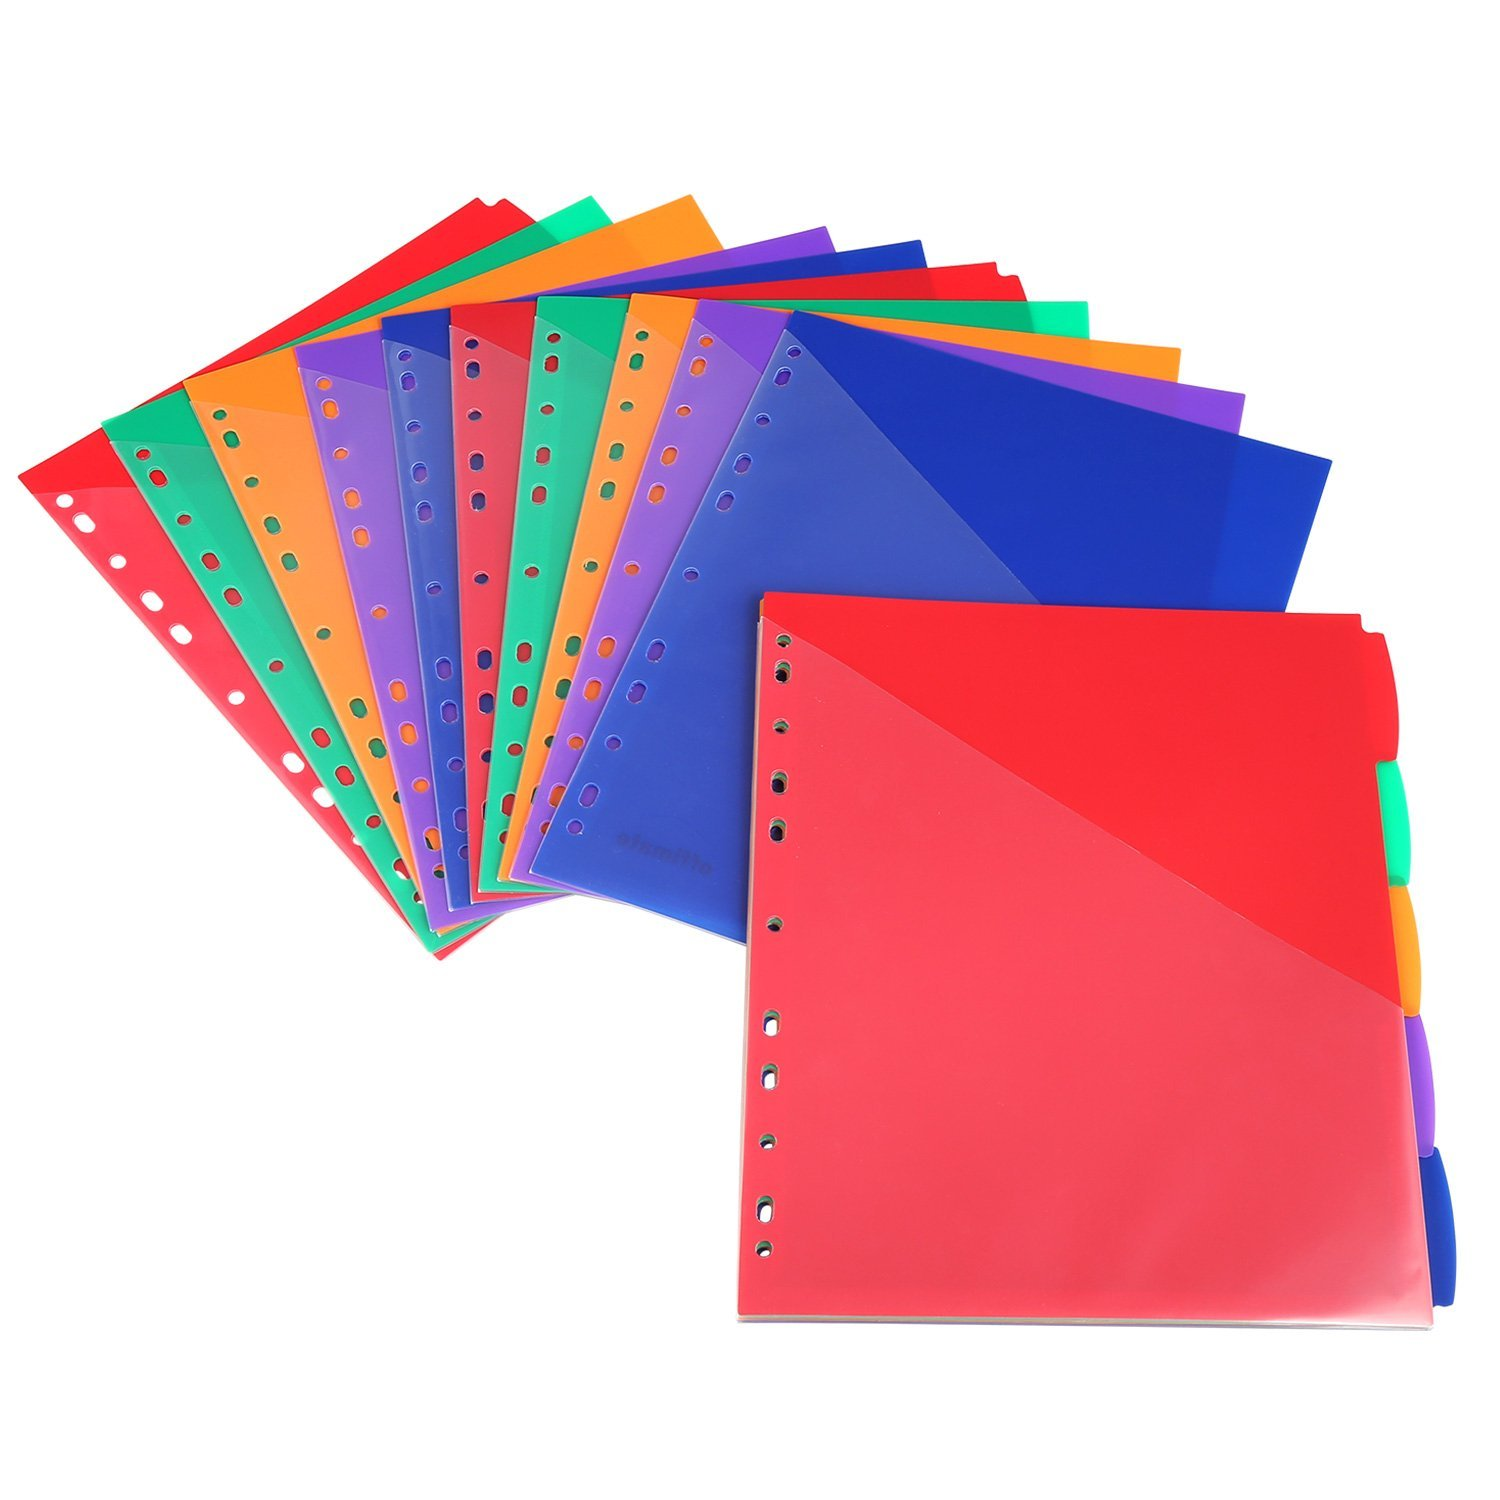 Insertable Plastic Dividers,Binders Dividers with Pockets & tabs,5-Tab Set, Multi-Color,Pack of 3